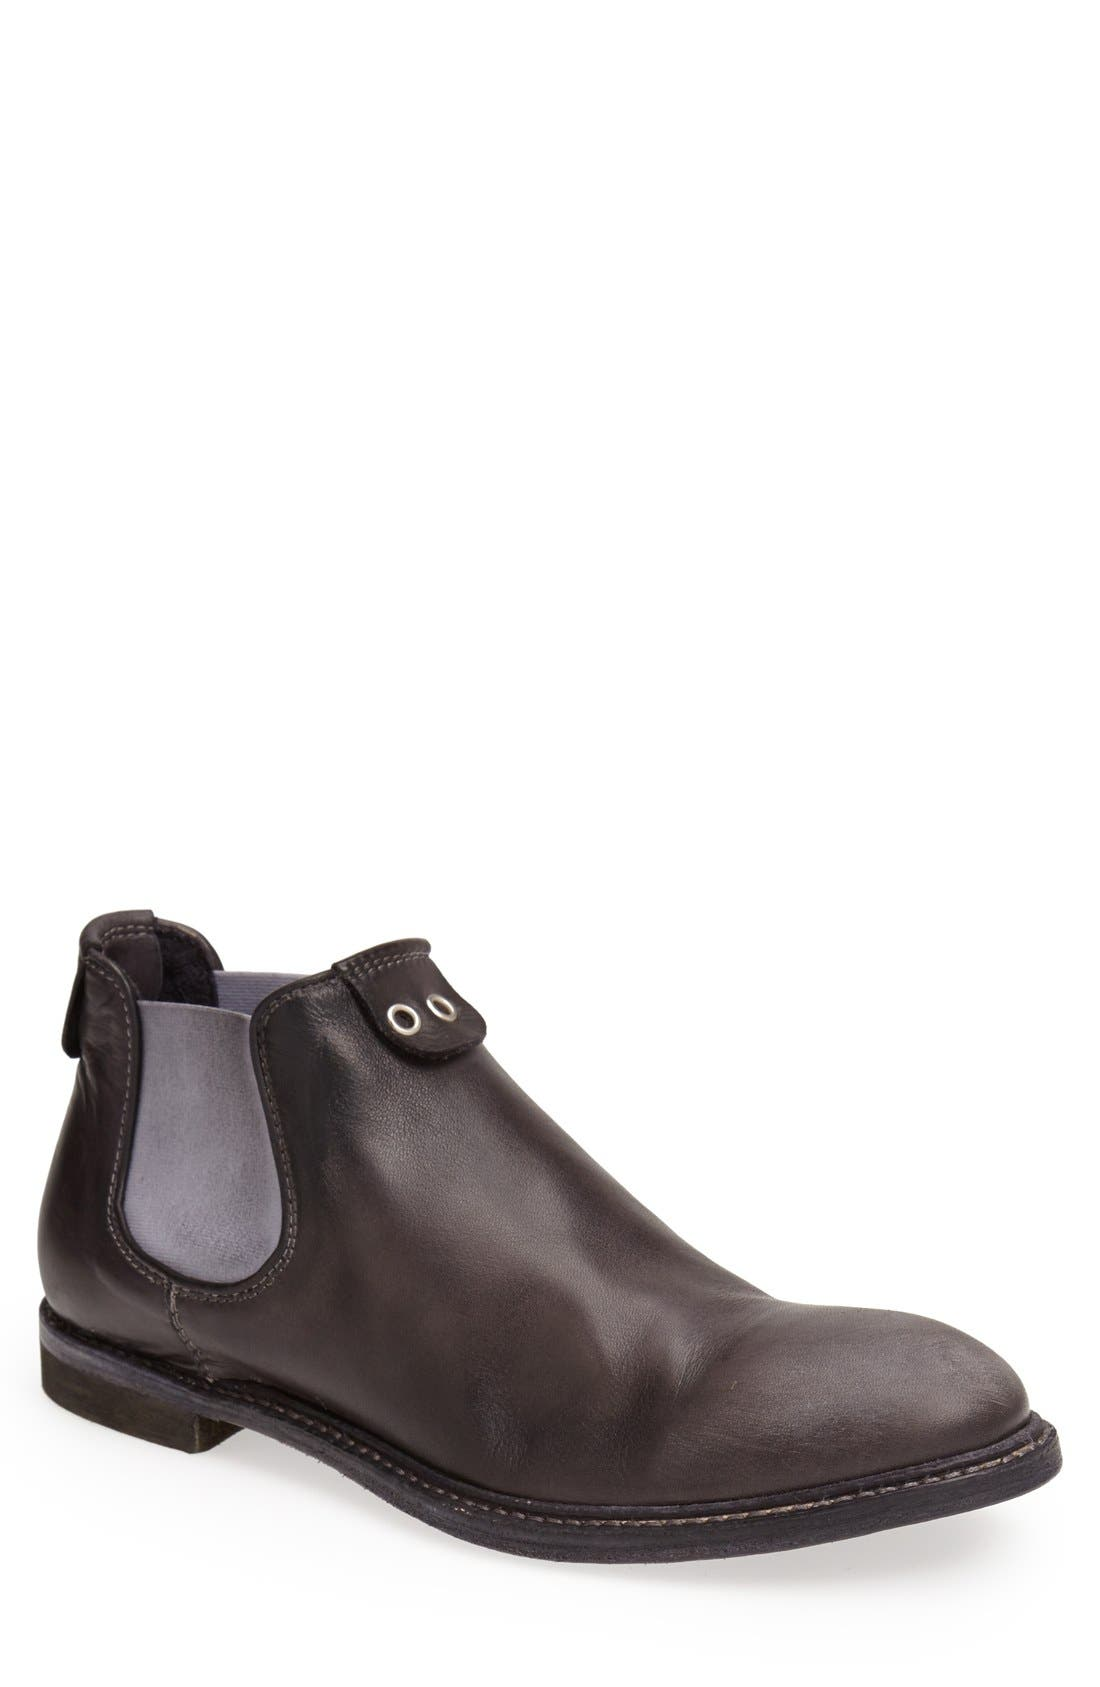 Chelsea Boot, Main, color, 020